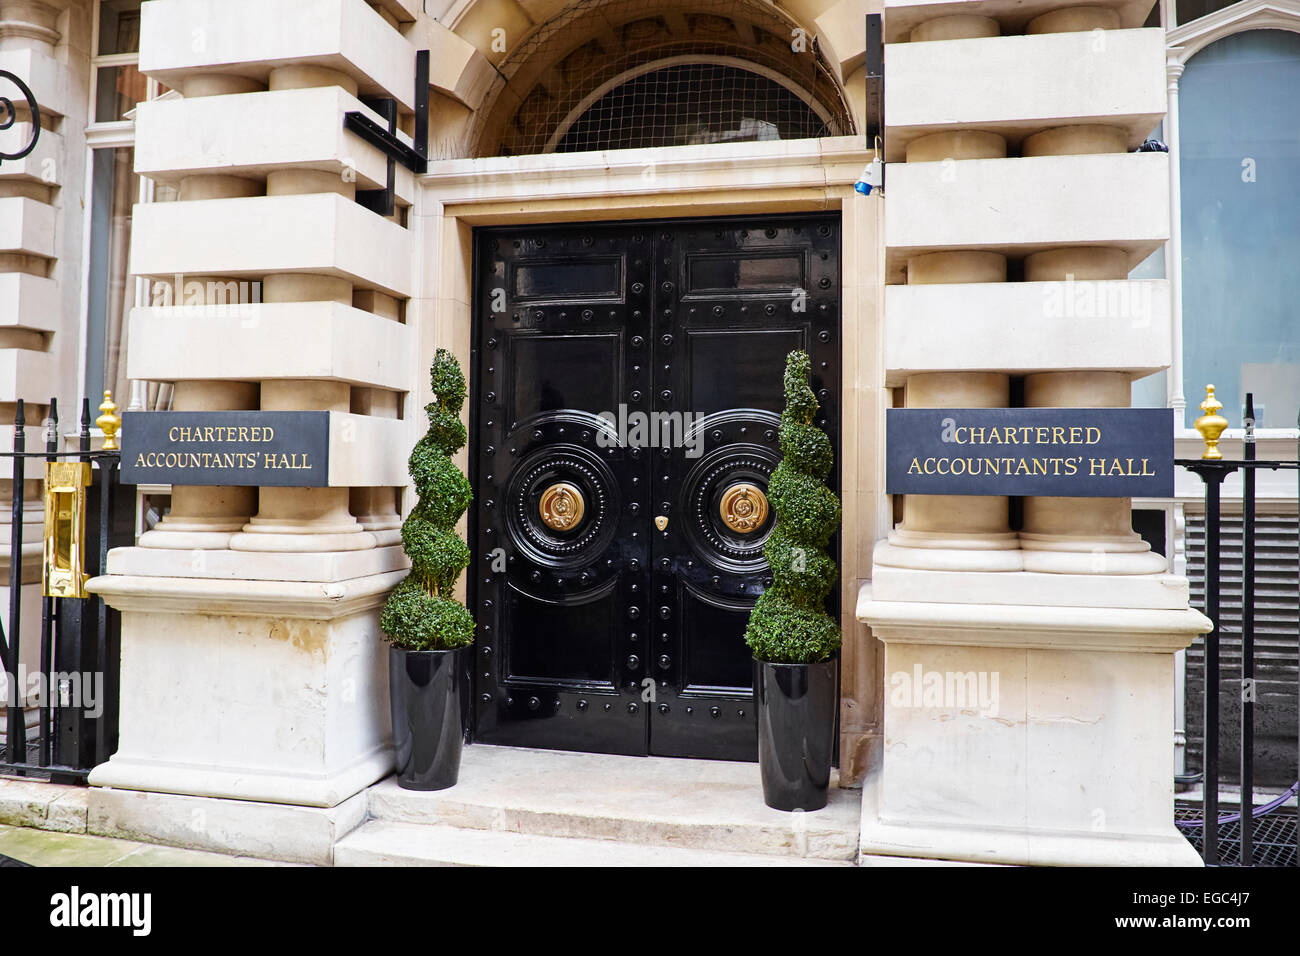 Institute Of Chartered Accountants Hall Moorgate Place City Of London UK - Stock Image